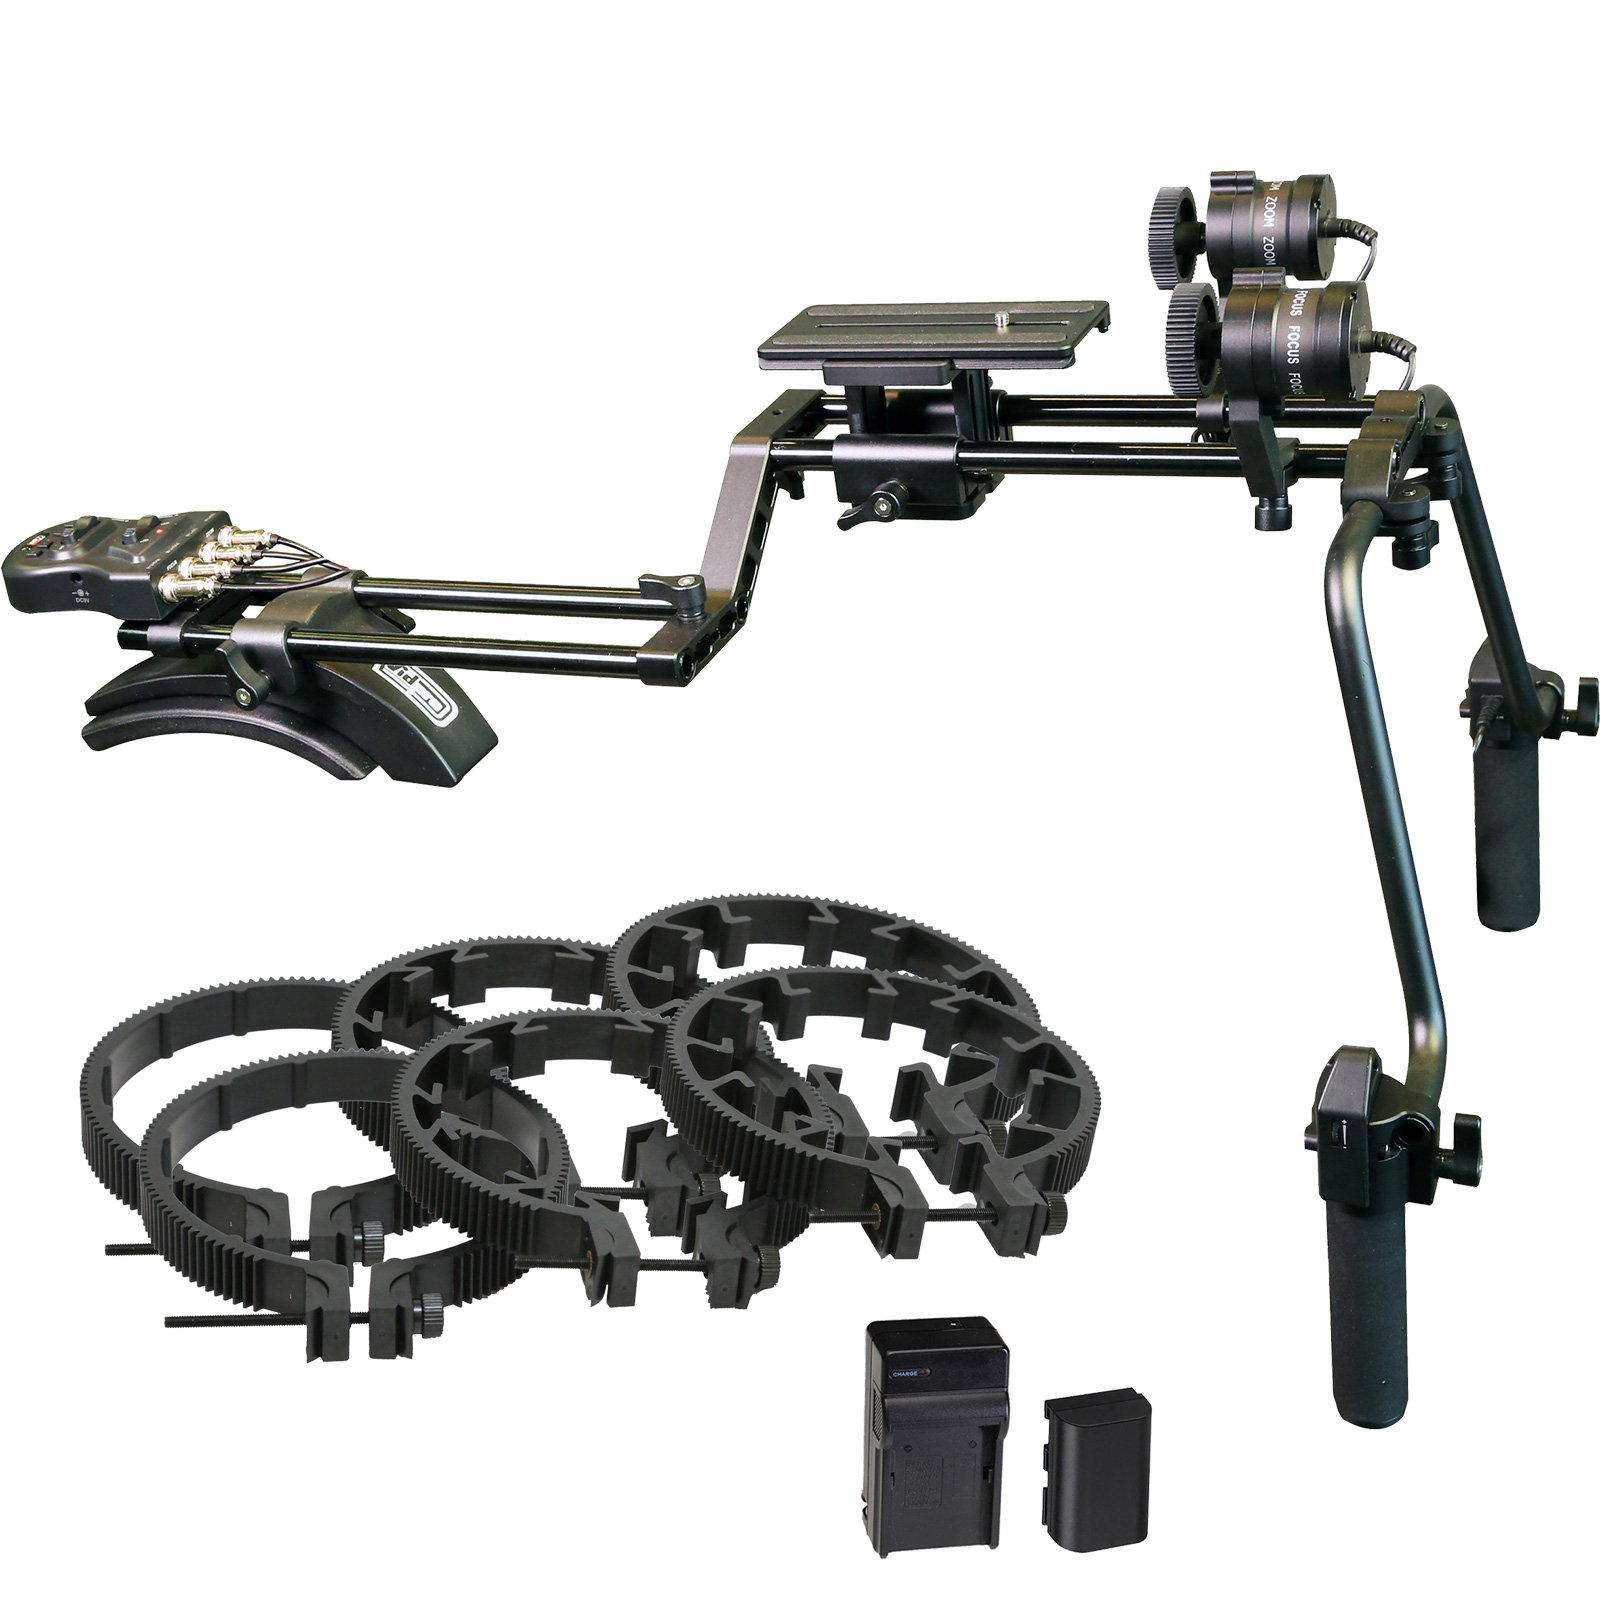 Vidpro MR-500 Motorized Focus & Zoom Shoulder Rig for Digital SLR Cameras by VidPro